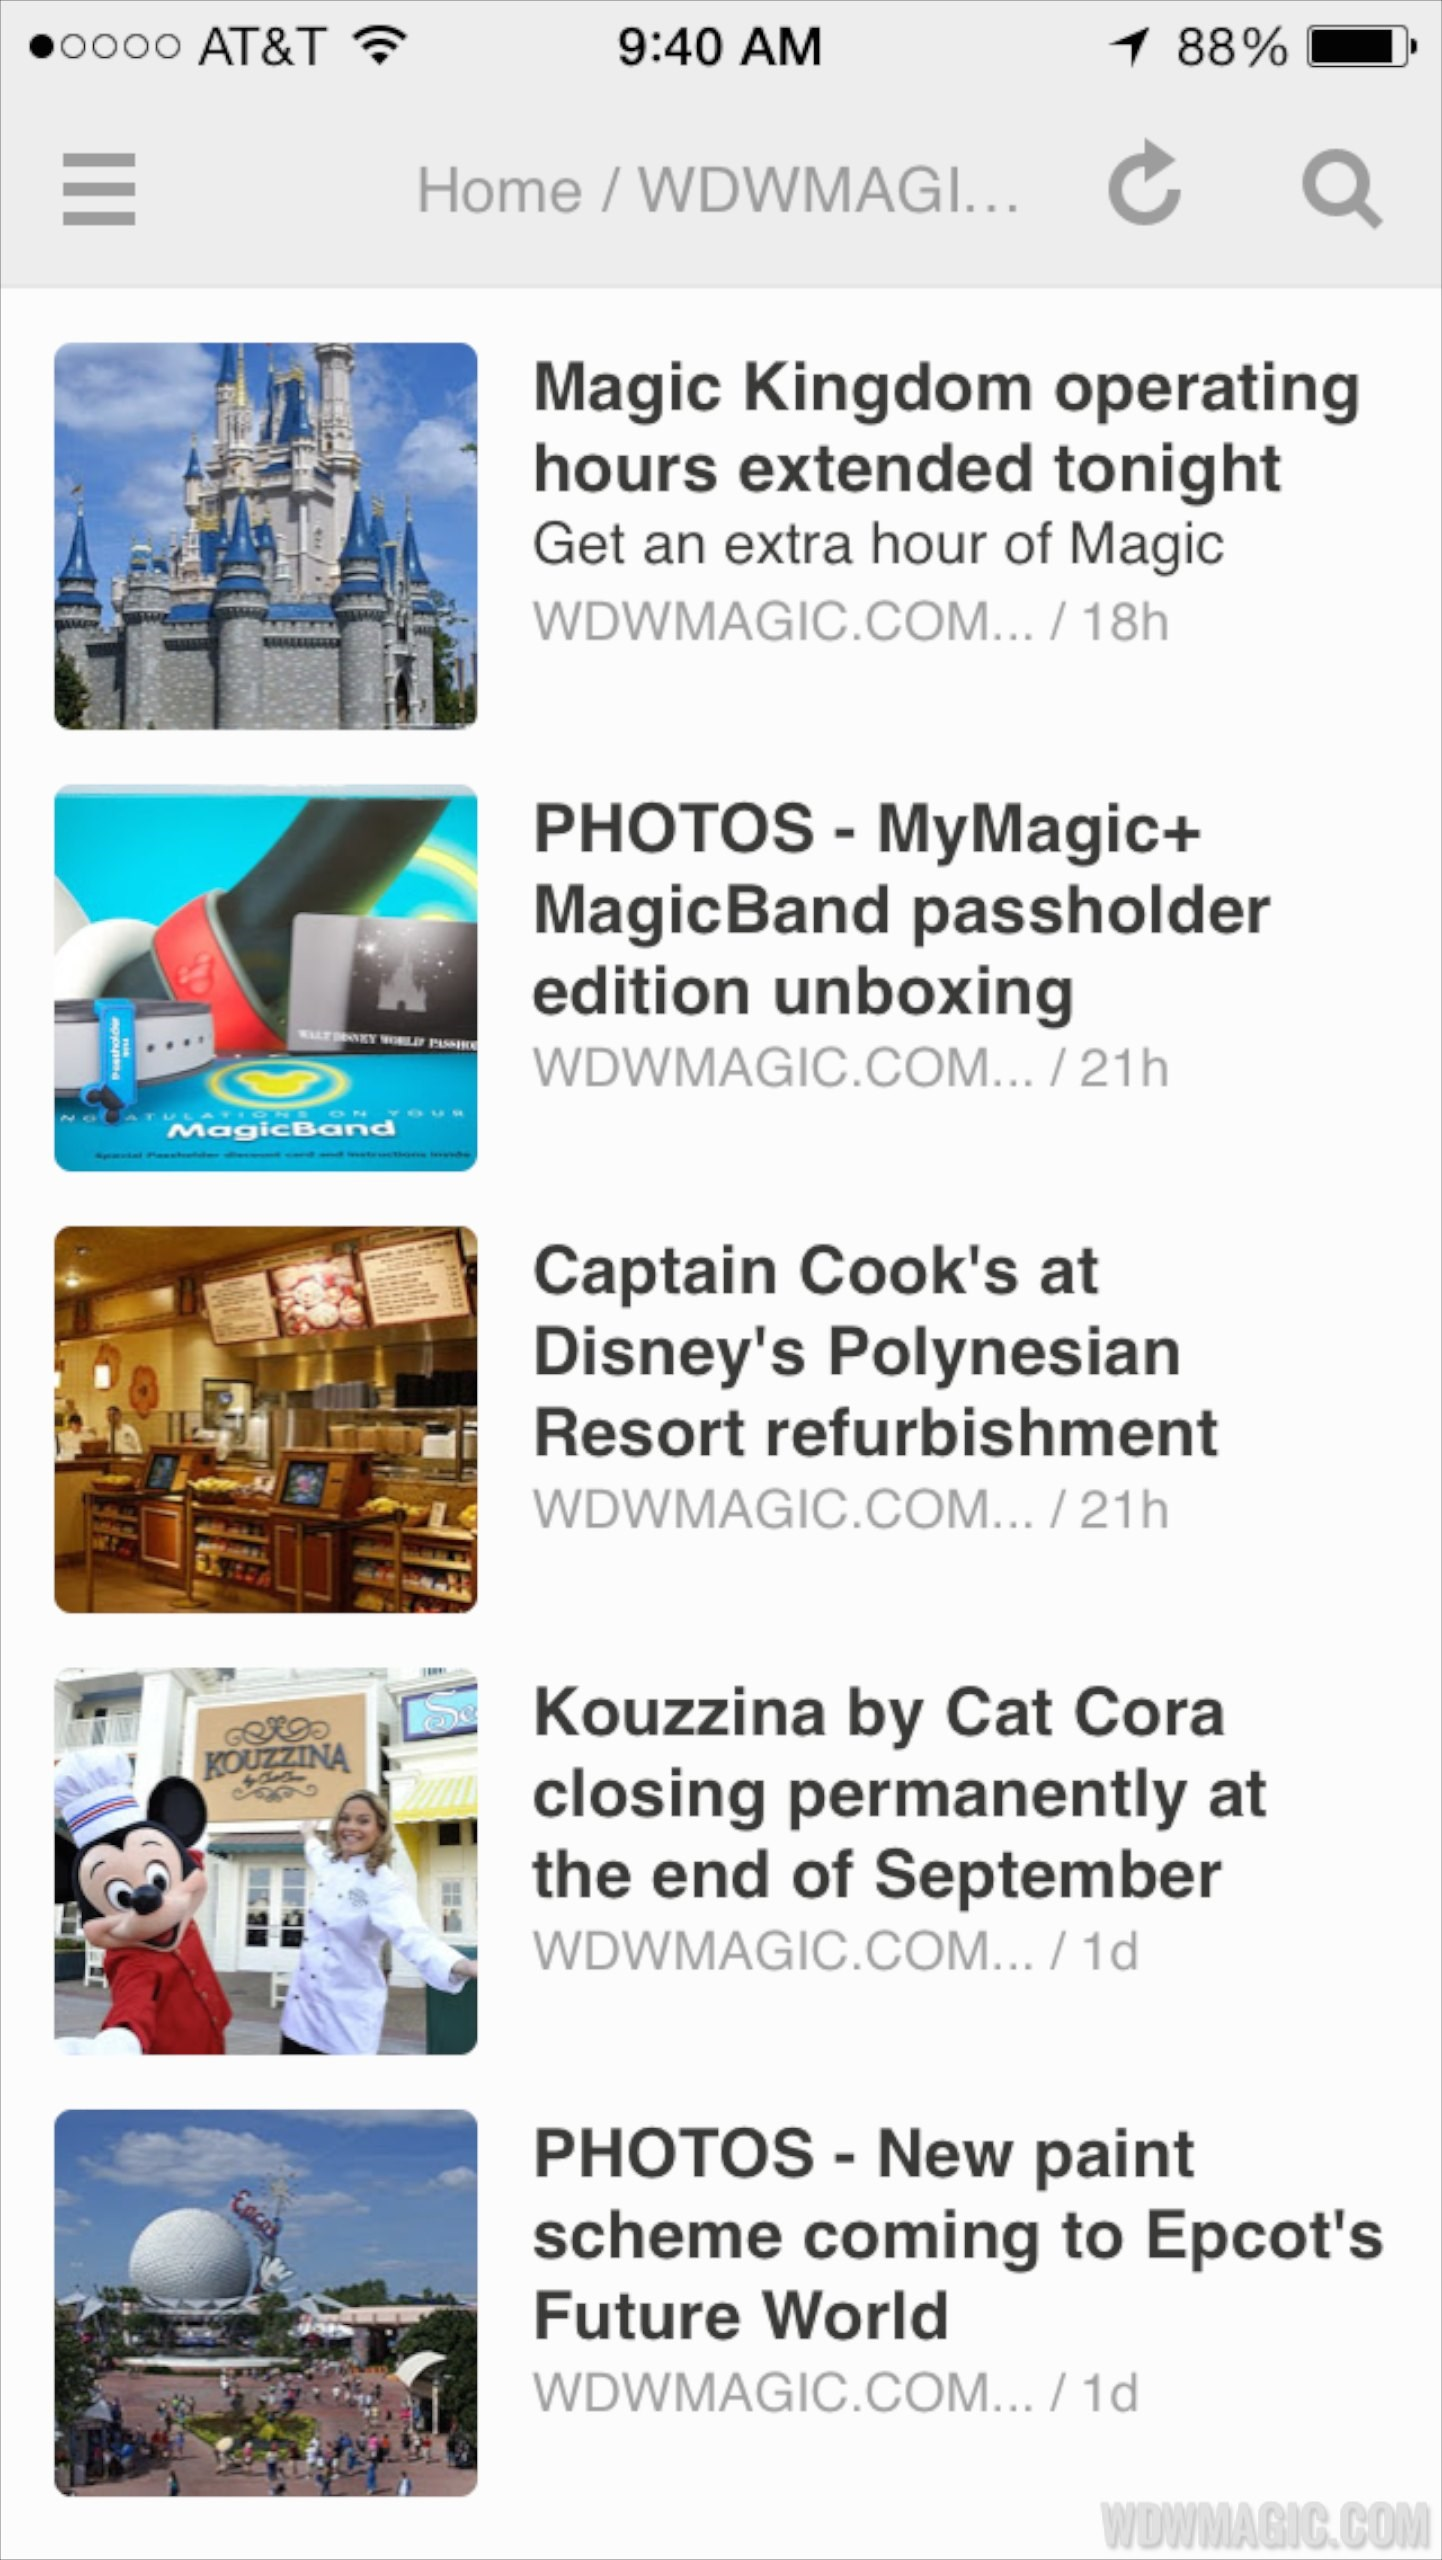 WDWMAGIC RSS screenshots